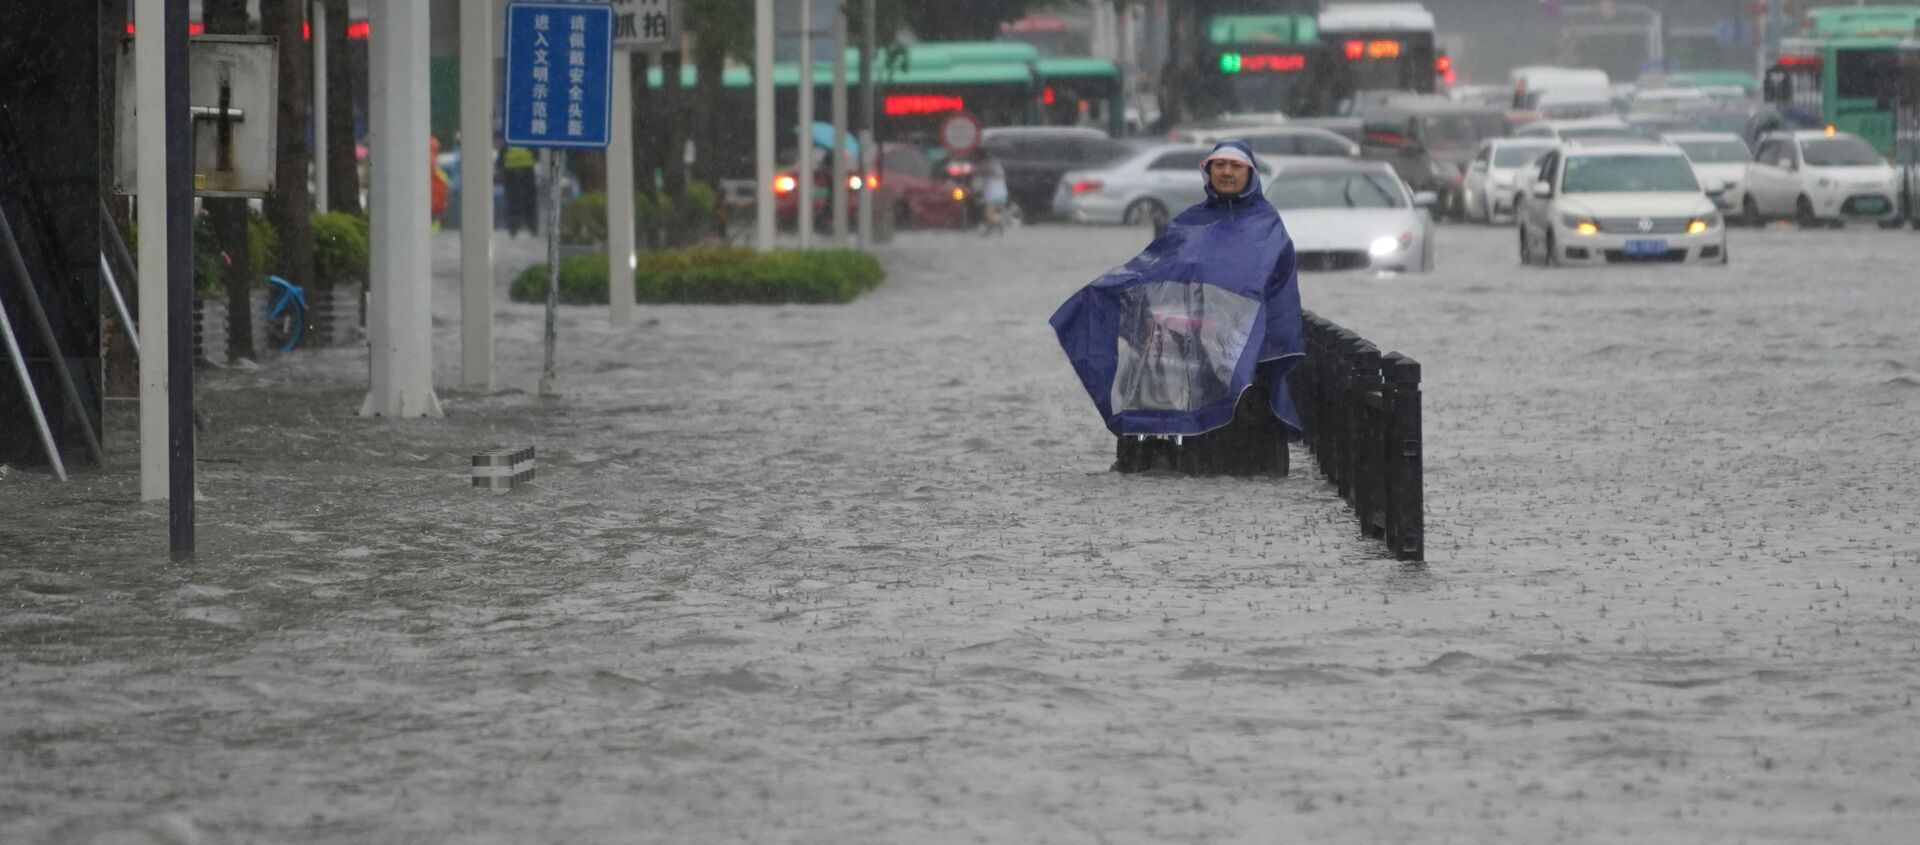 A resident wearing a rain cover stands on a flooded road in Zhengzhou, Henan province, China July 20, 2021. - Sputnik International, 1920, 20.07.2021